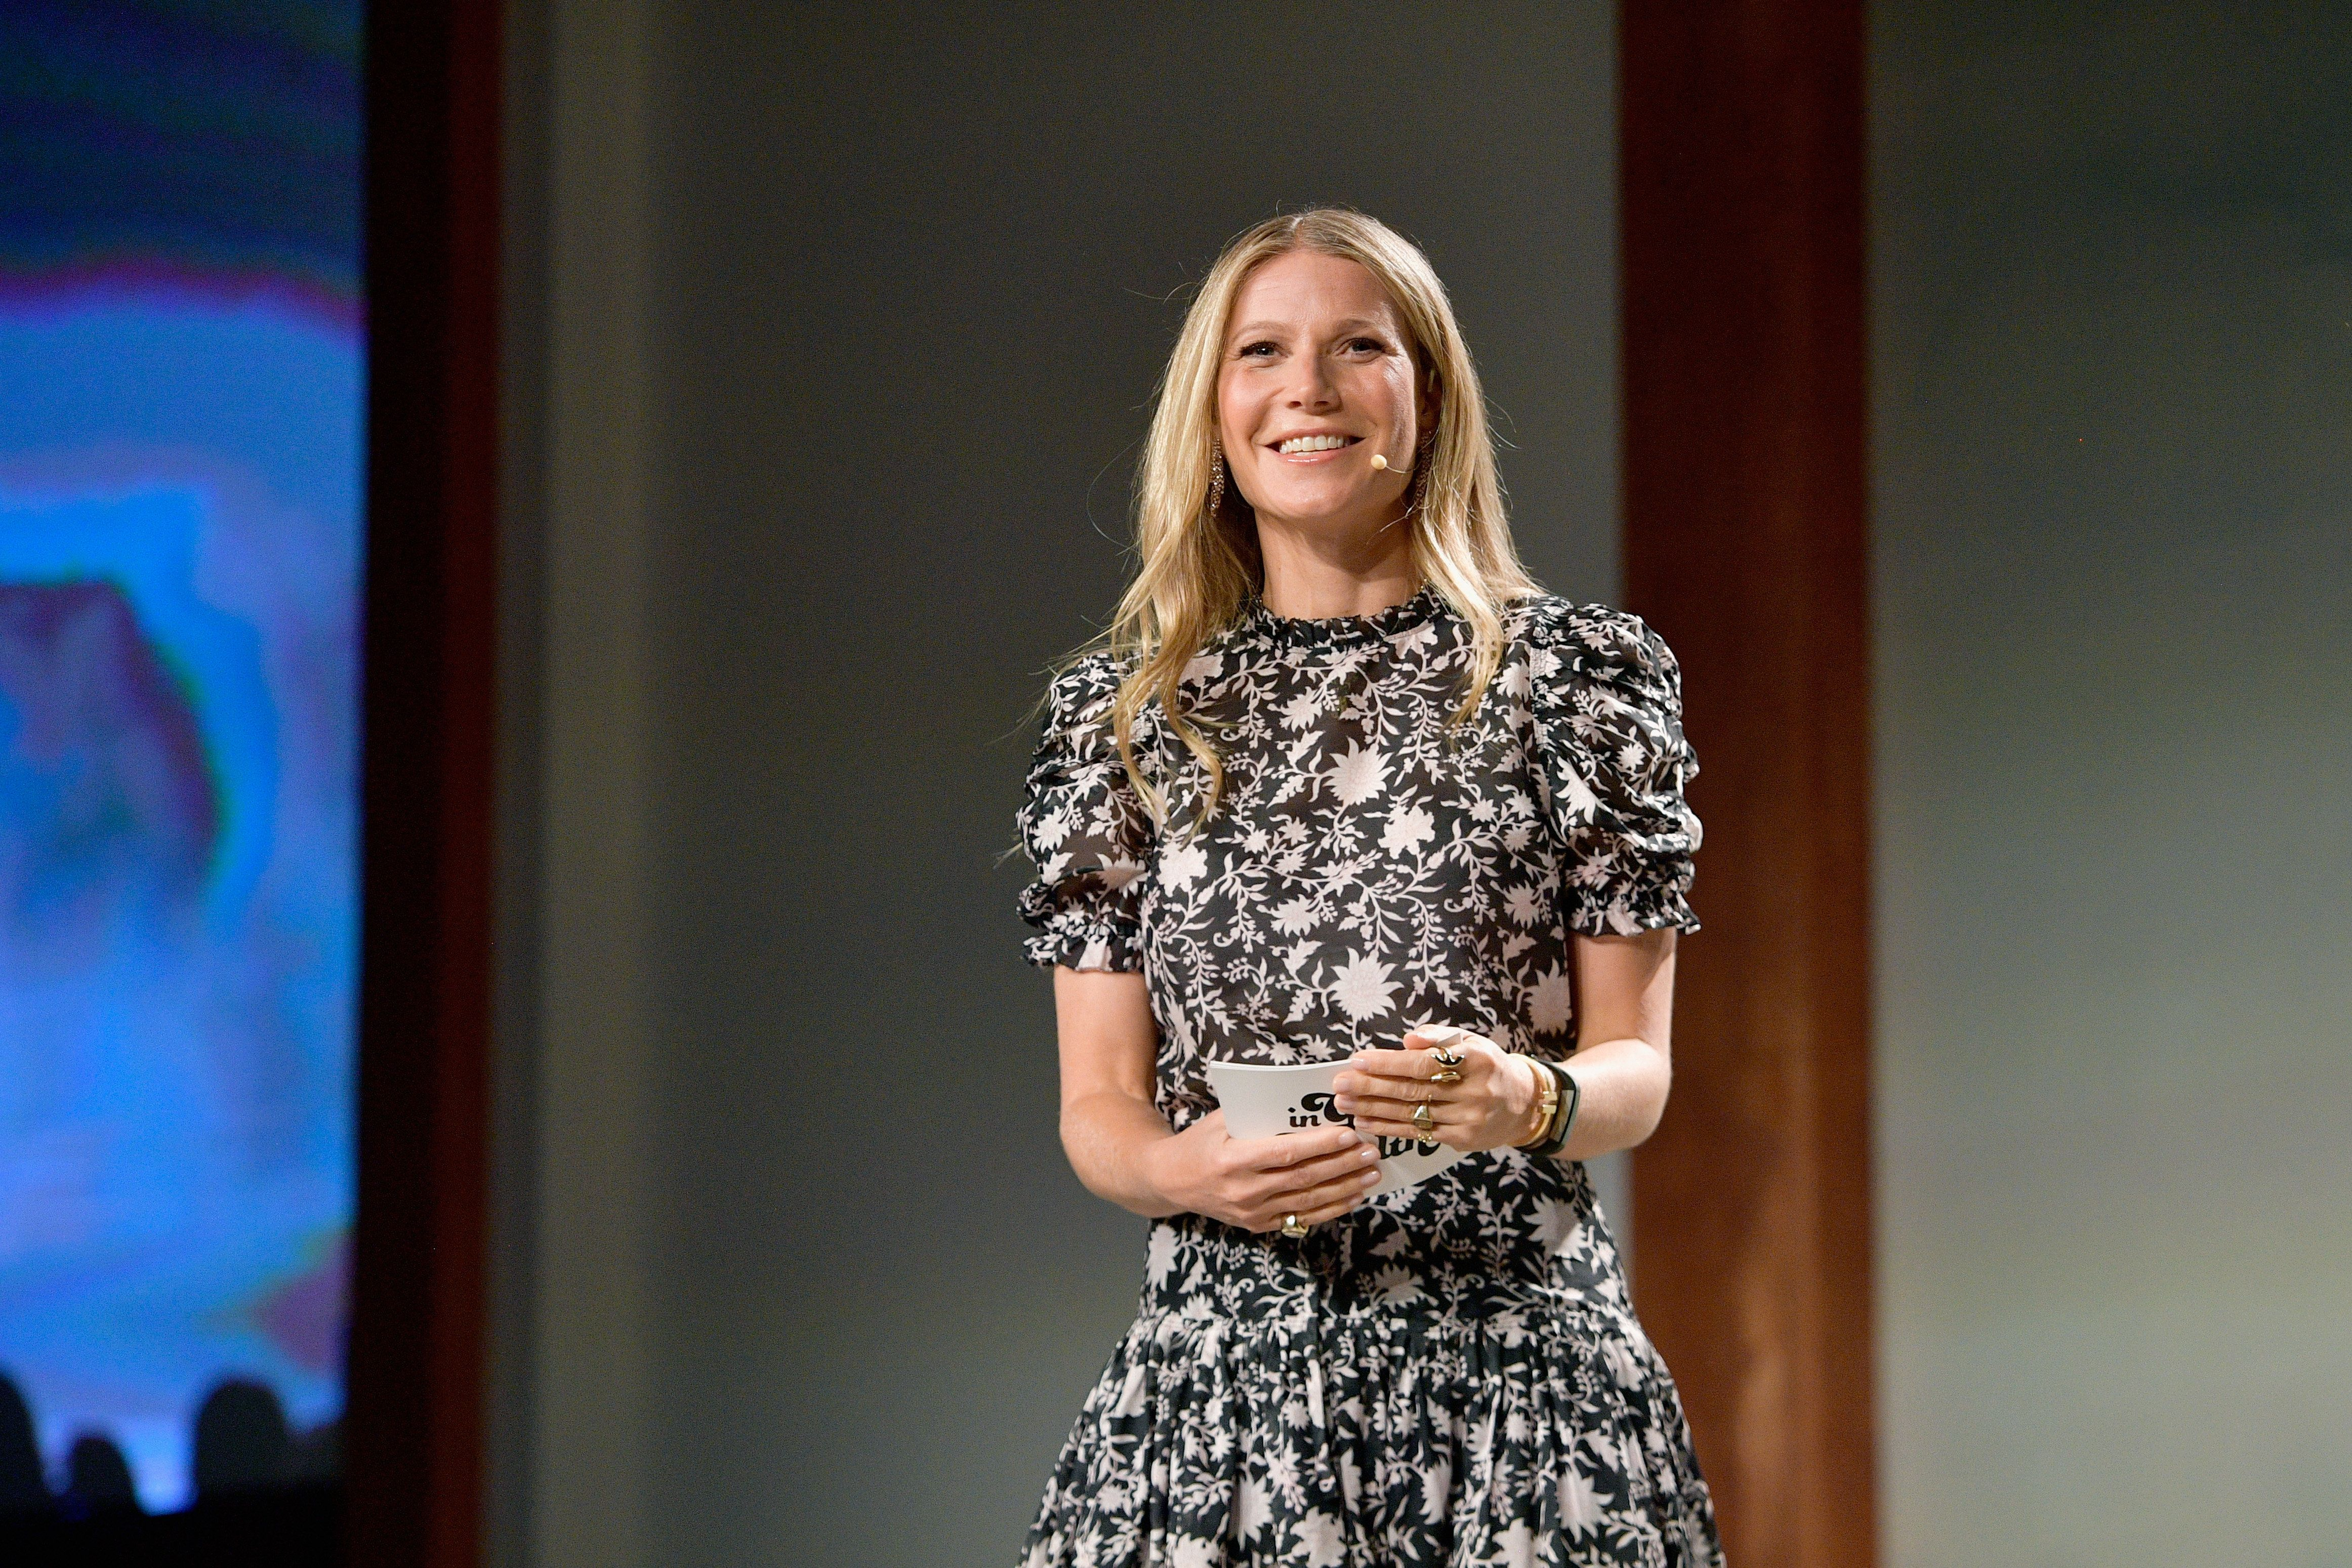 CULVER CITY, CA - JUNE 09:  Gwyneth Paltrow speaks onstage at the In goop Health Summit at 3Labs on June 9, 2018 in Culver City, California.  (Photo by Matt Winkelmeyer/Getty Images for goop)